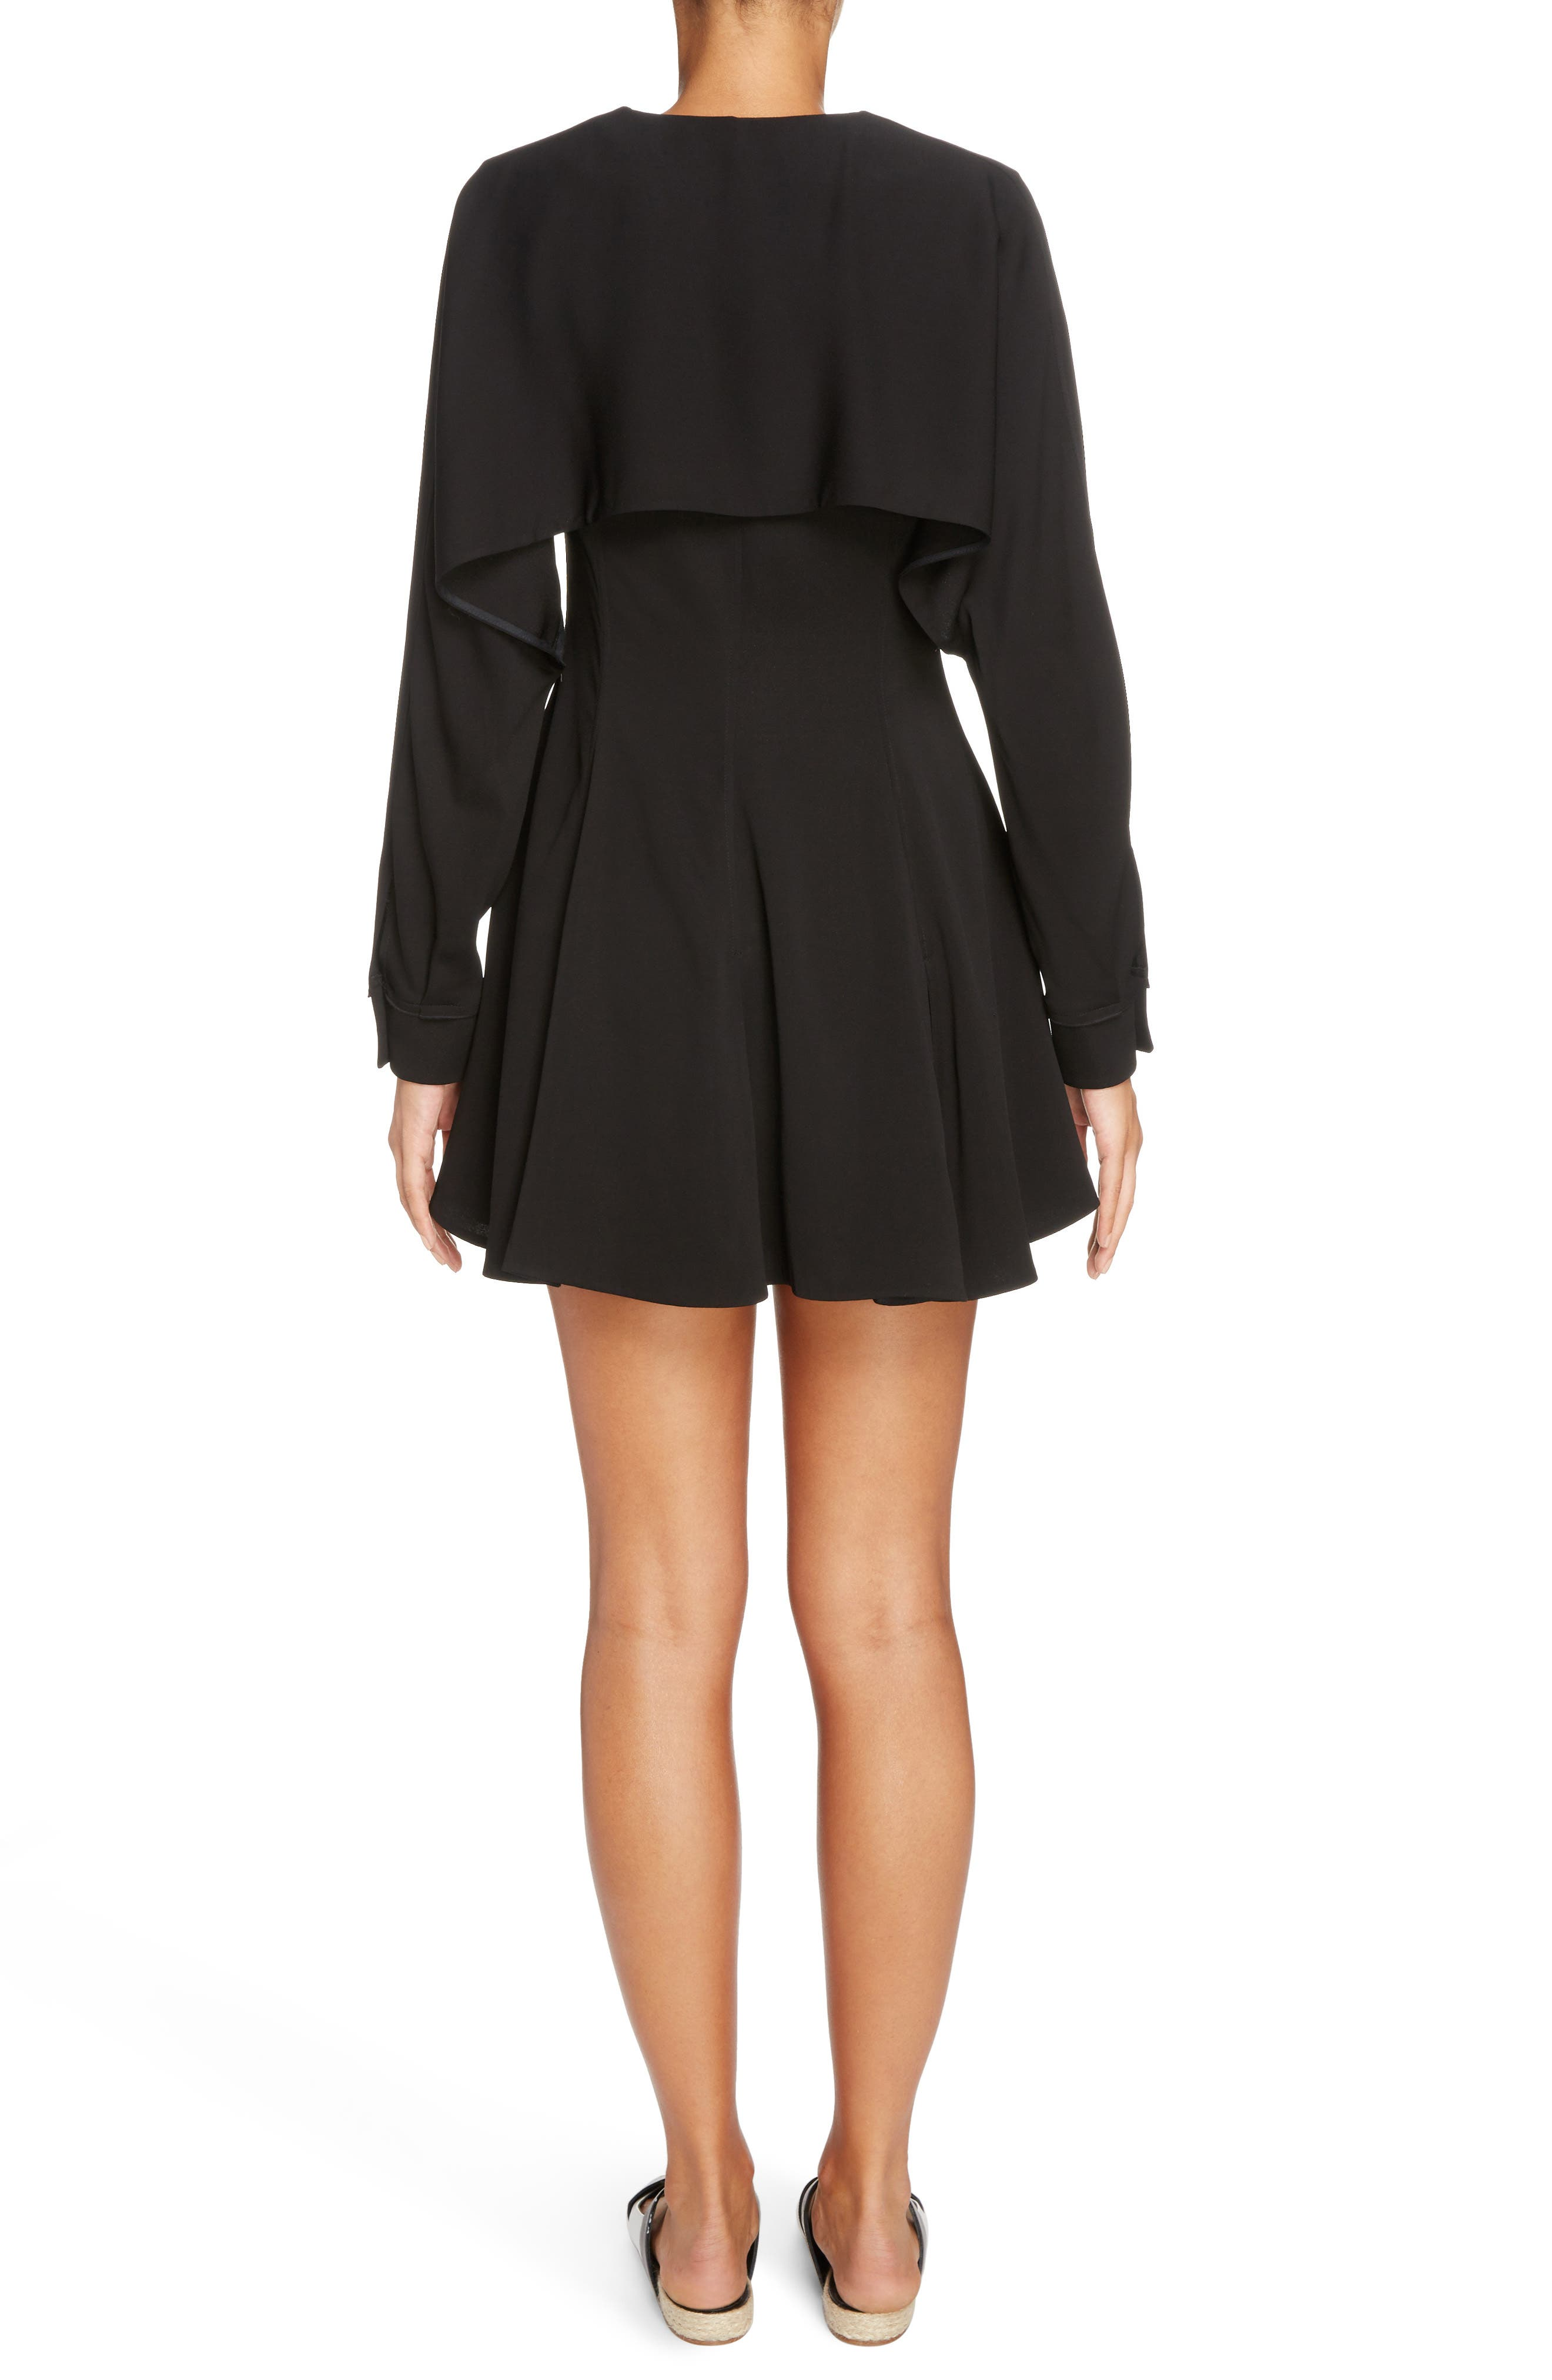 J.W.ANDERSON Double Breasted Skater Dress,                             Alternate thumbnail 2, color,                             Black